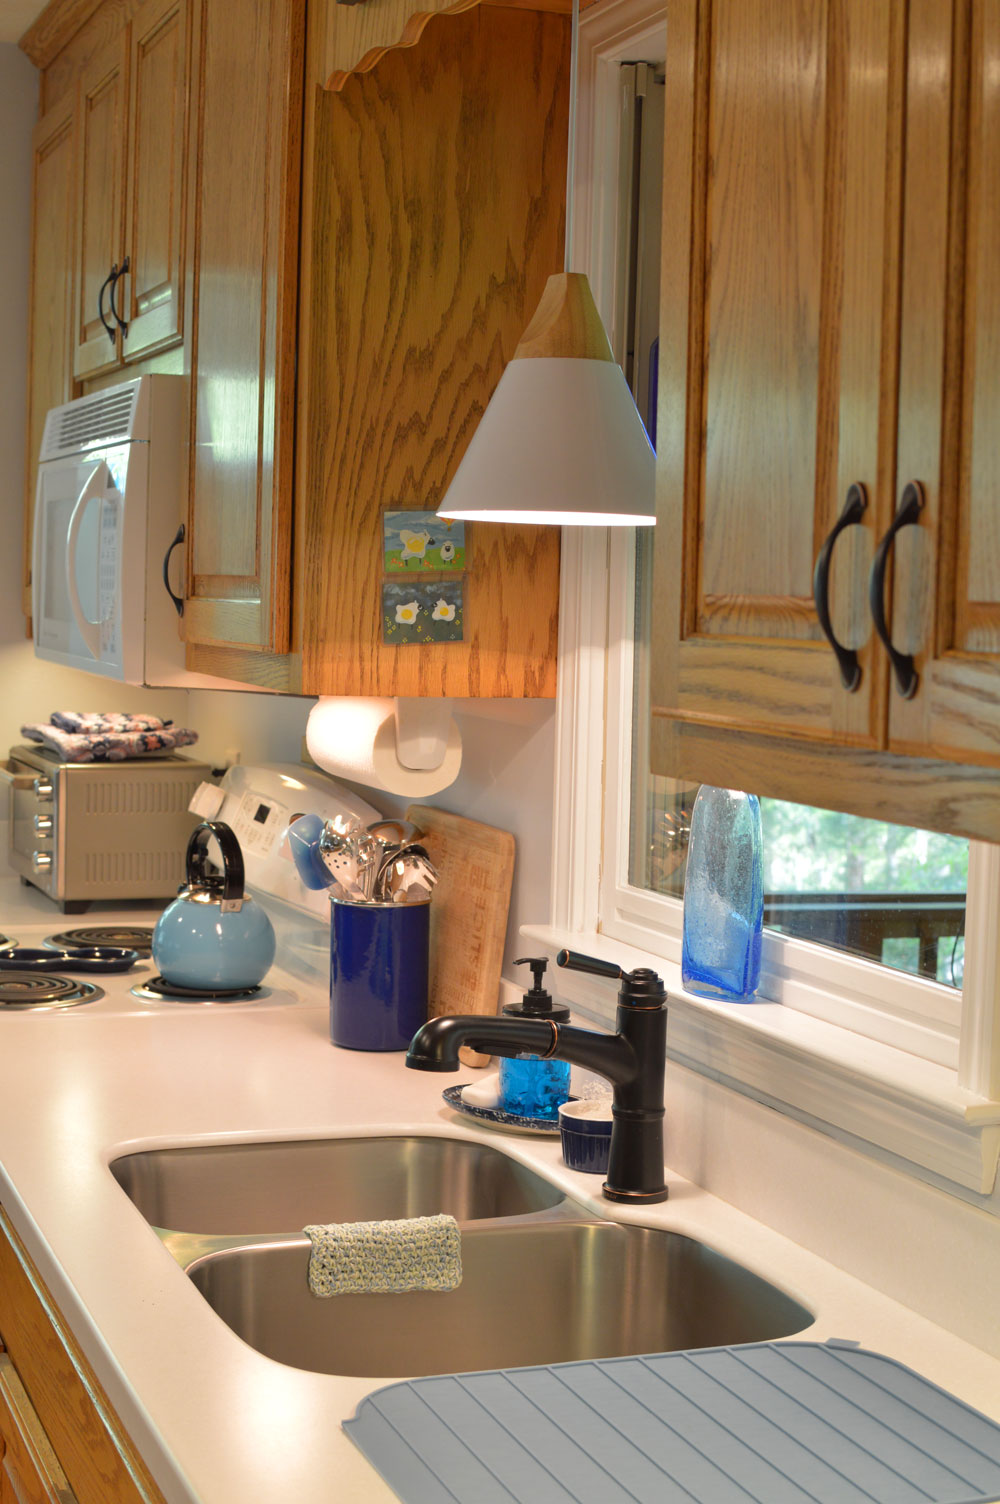 Oak-wood-cabinets-white-countertop-blue-walls-oiled-bronze-fixtures-hardware-kitchen-oak-floors-1